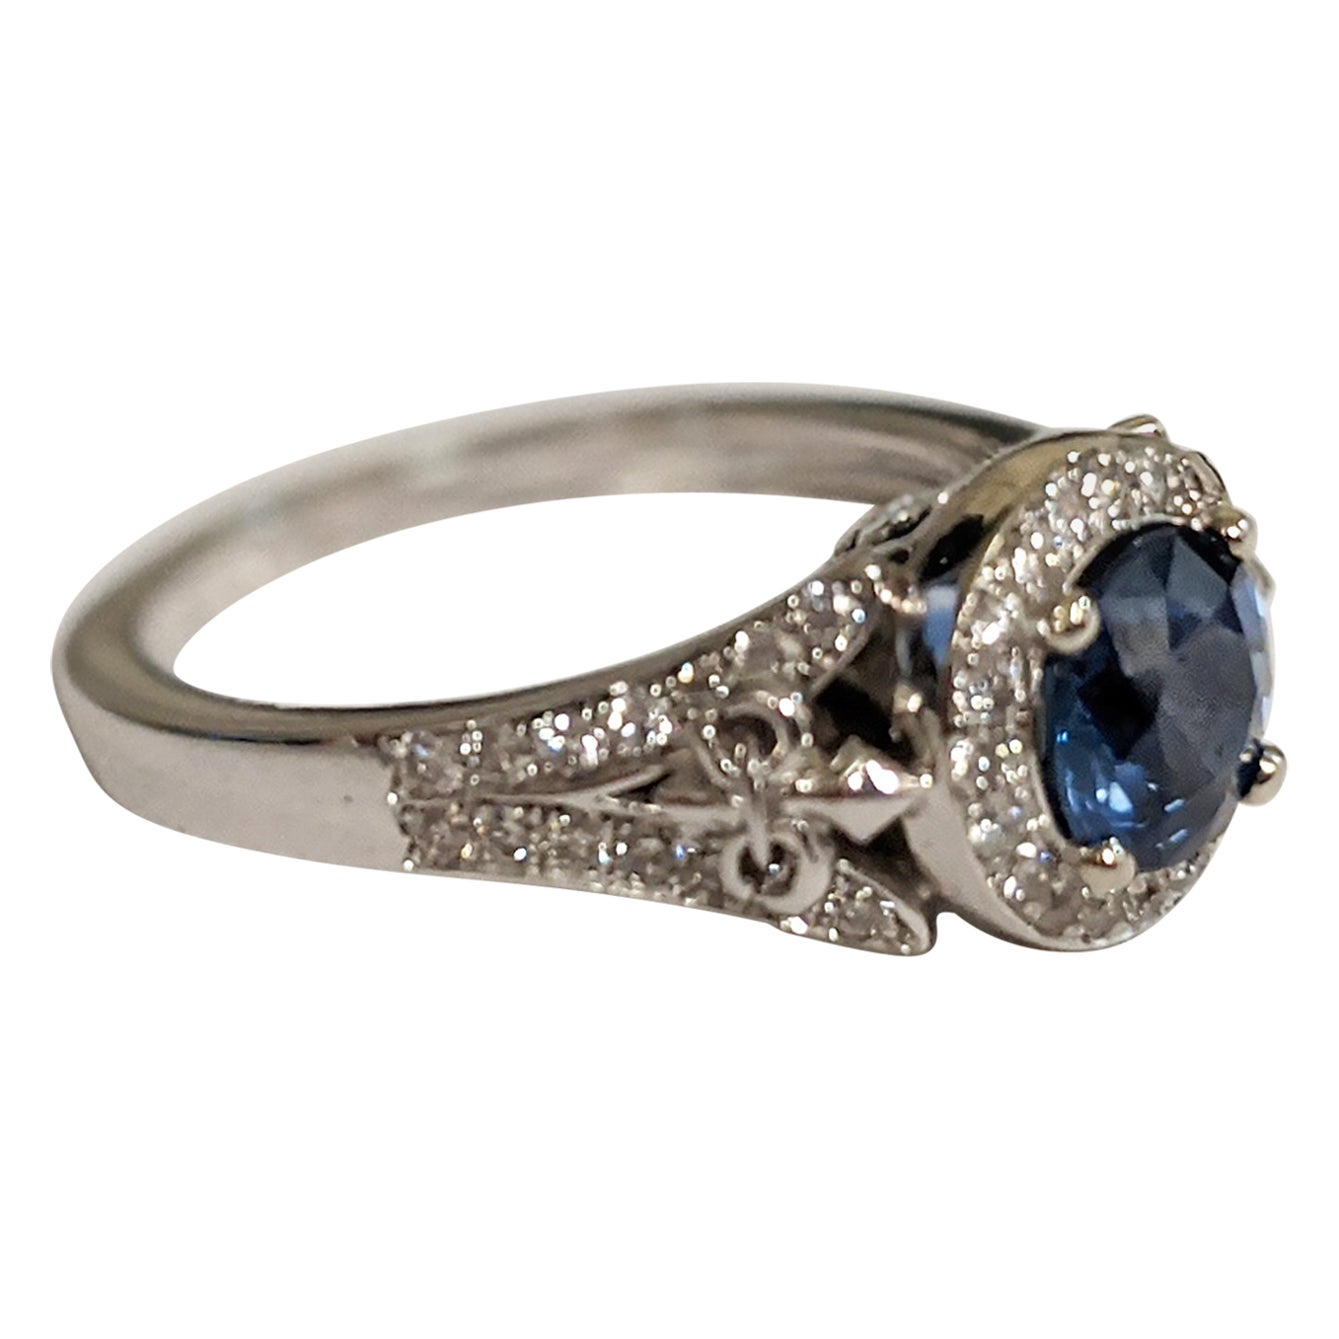 Round-Cut Sapphire Ring with Diamond Halo and Details